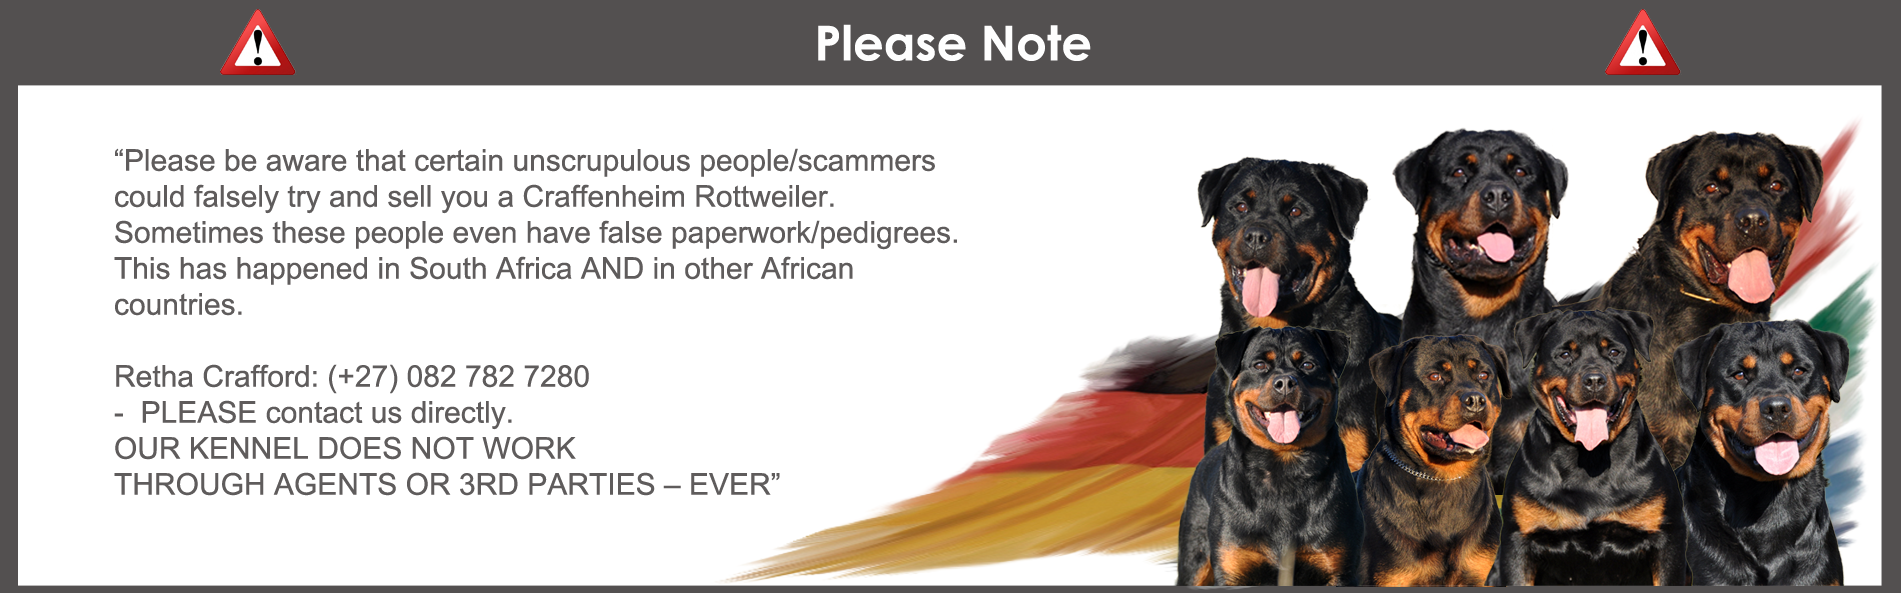 craffenheim-warning-slide-3.png